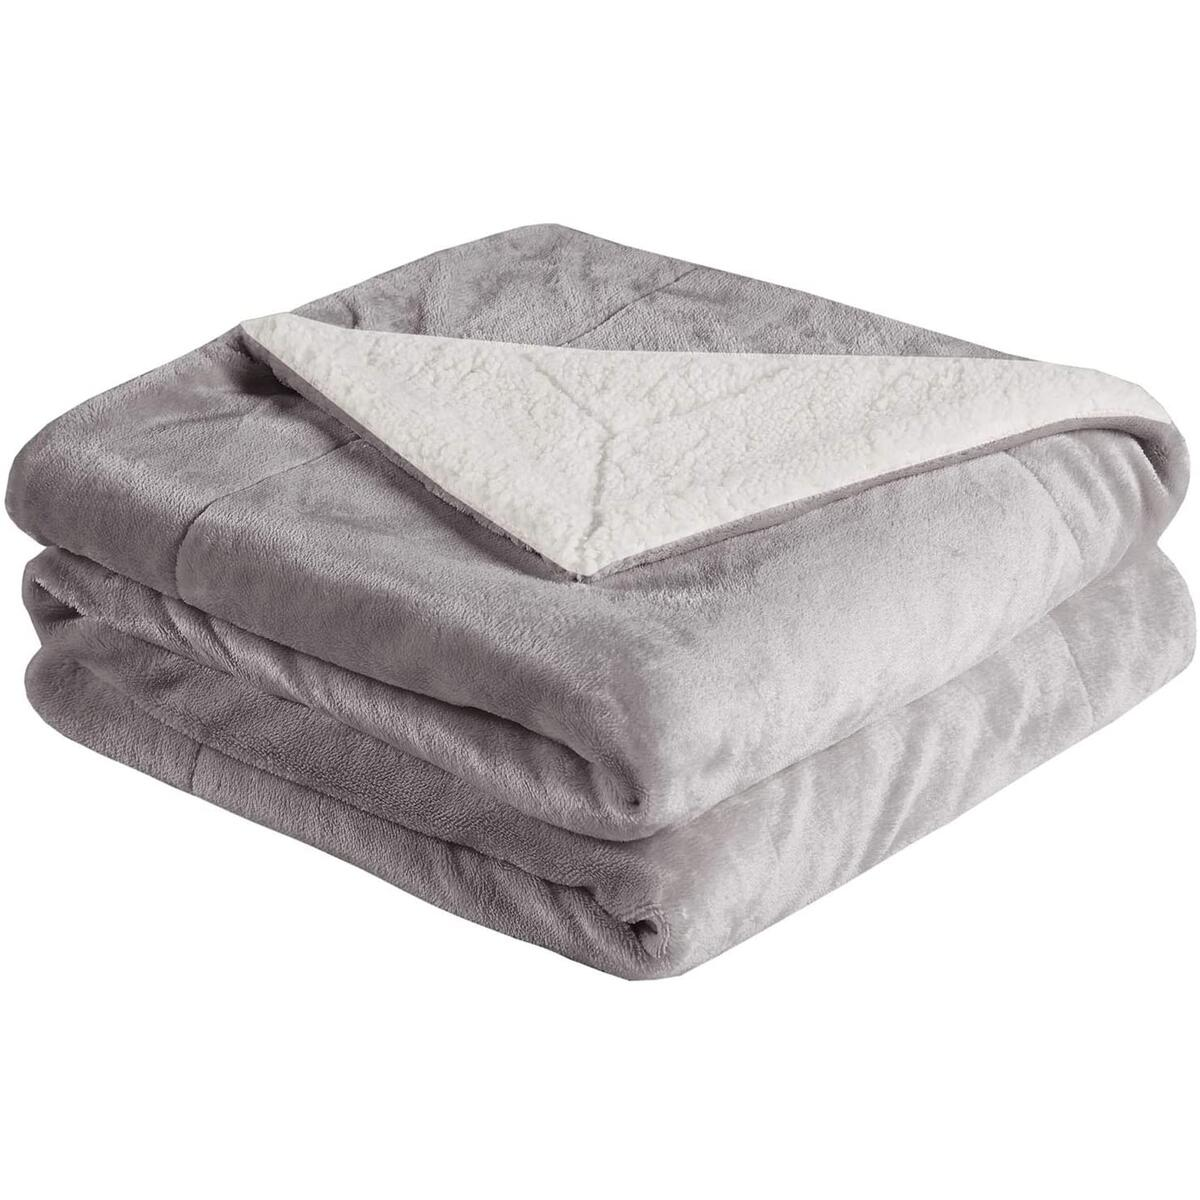 Cozy Grey Sherpa Throw Blanket - Fuzzy Soft Plush Flannel Blanket for Sofa, Couch, Bed, Outdoor, Travel - 50x60 Inches, Grey